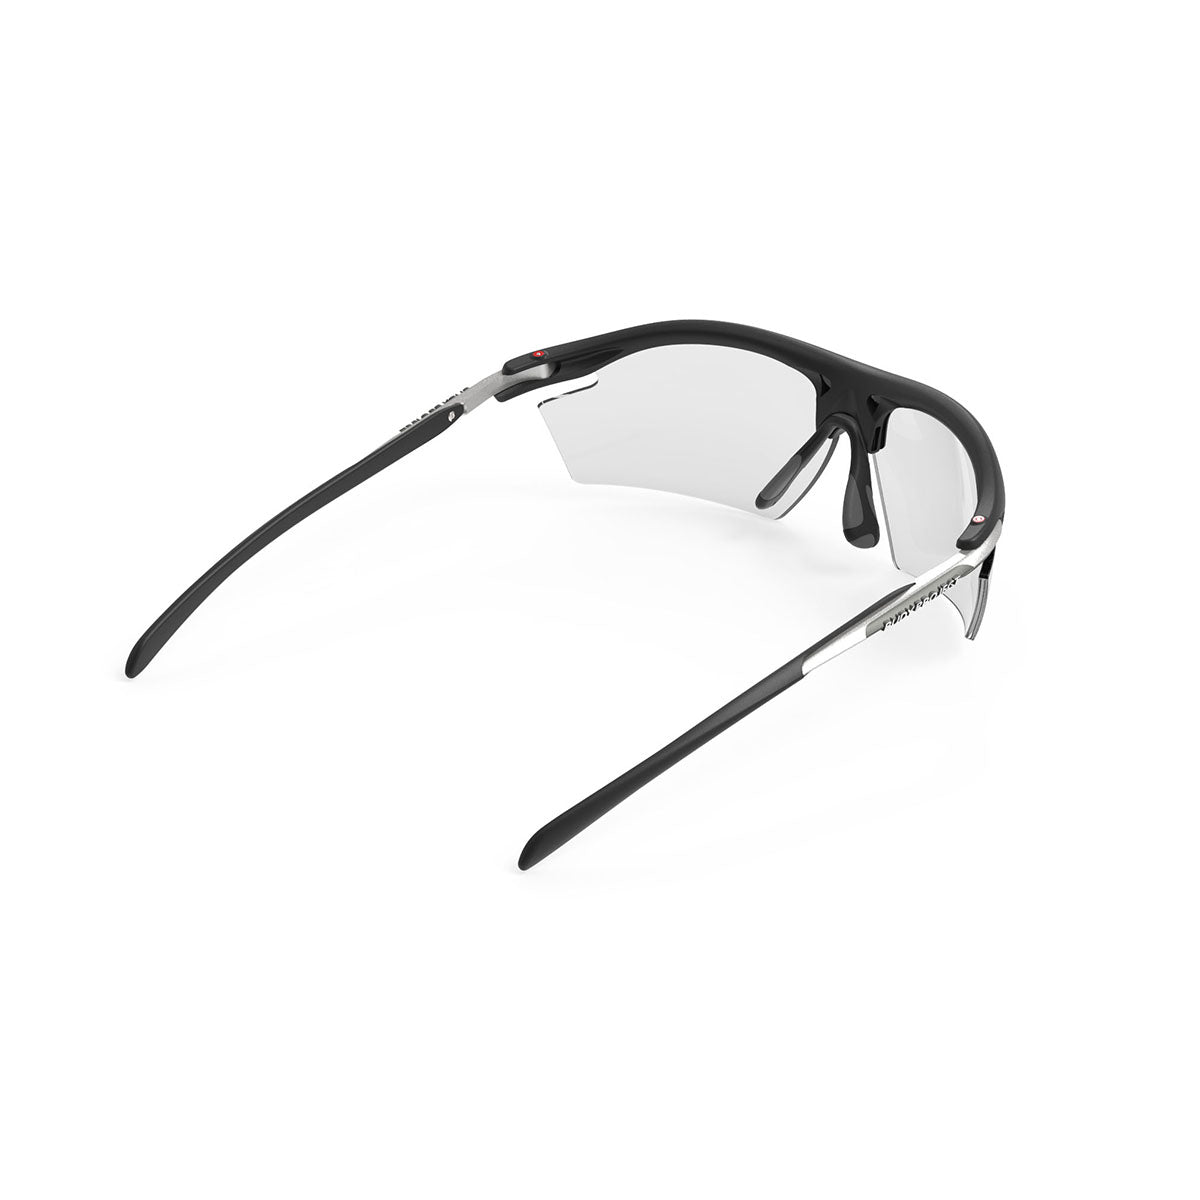 Rudy Project - Rydon - frame color: Matte Black - lens color: ImpactX-2 Photochromic Clear to Black - photo angle: Top Back Angle Variant Hover Image